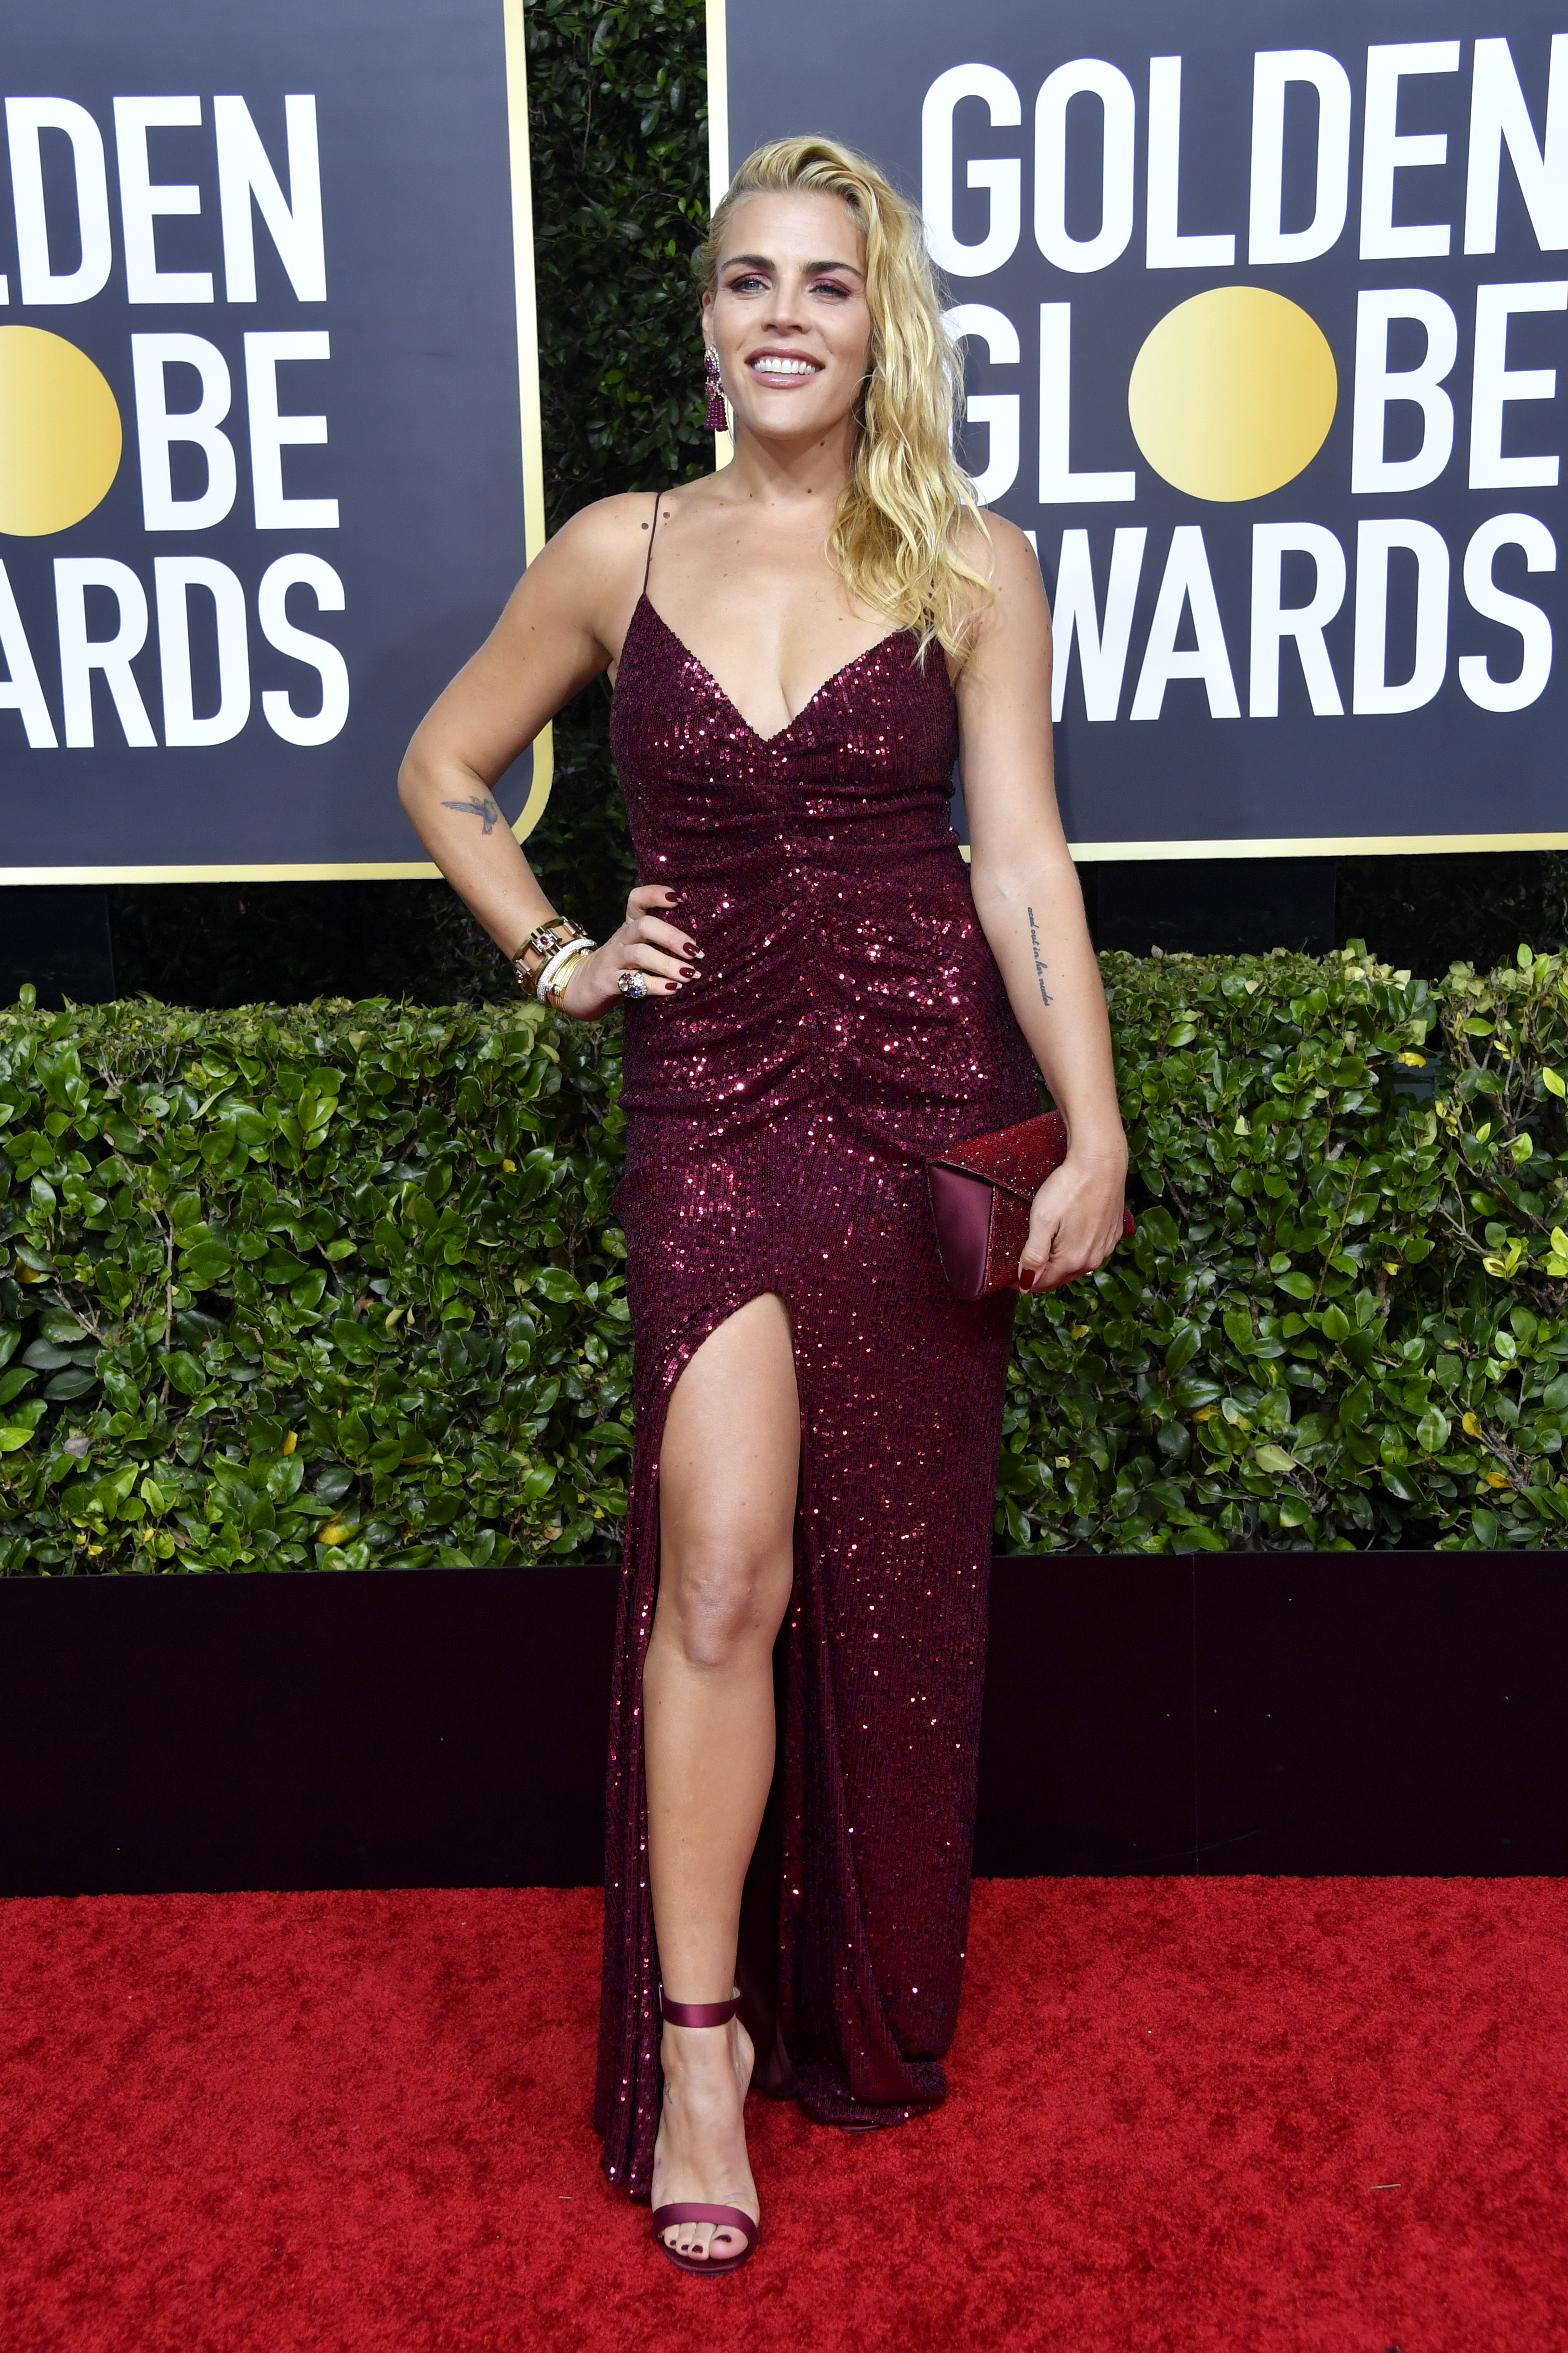 BEVERLY HILLS, CALIFORNIA - JANUARY 05: Busy Philipps attends the 77th Annual Golden Globe Awards at The Beverly Hilton Hotel on January 05, 2020 in Beverly Hills, California. (Photo by Frazer Harrison/Getty Images)